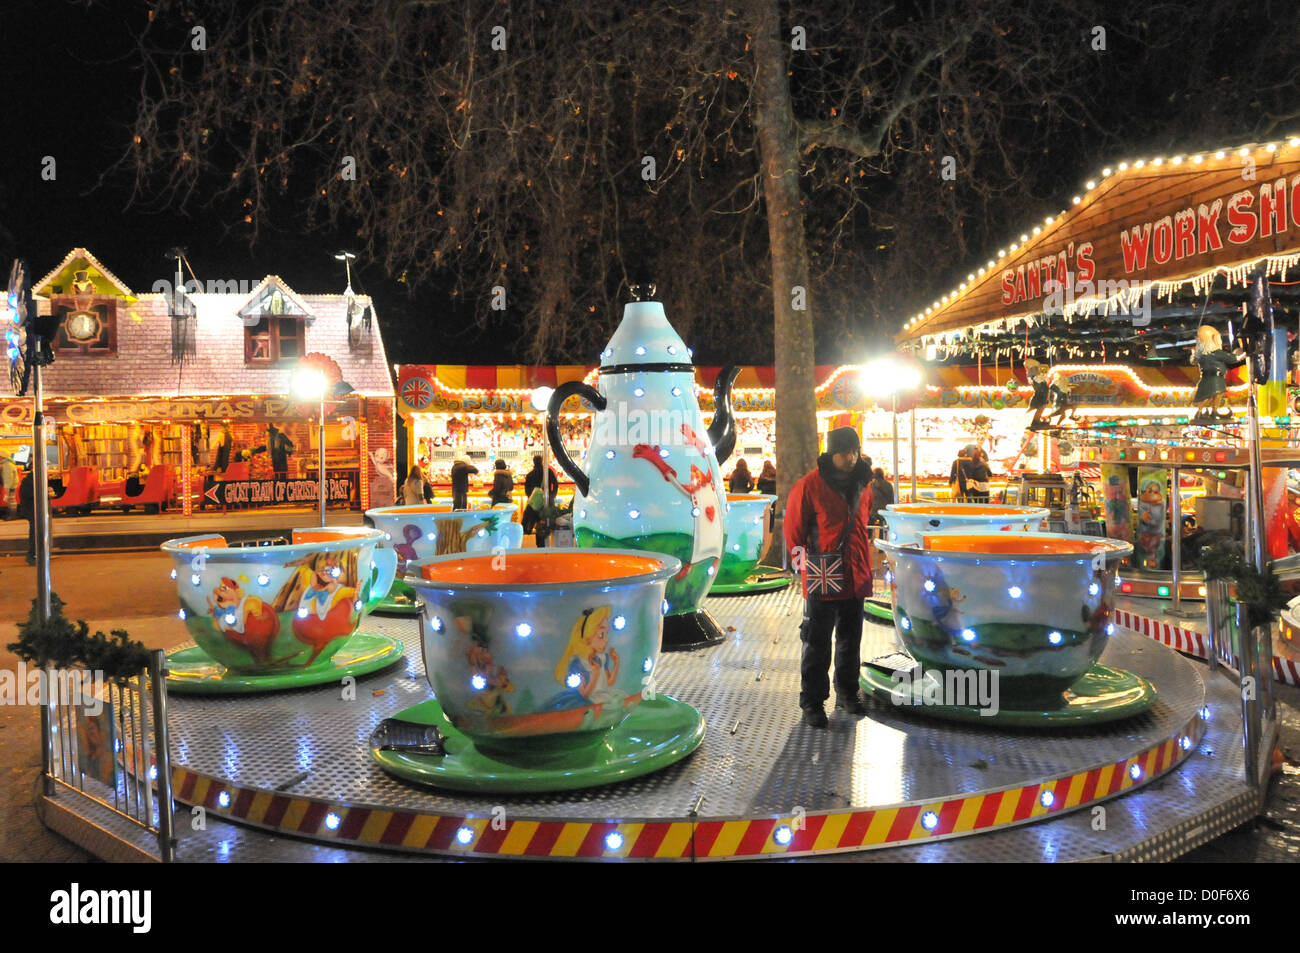 Hyde Park, London, UK. 23rd November 2012. A fairground ride waits for customers in Winter Wonderland. Winter Wonderland, - Stock Image